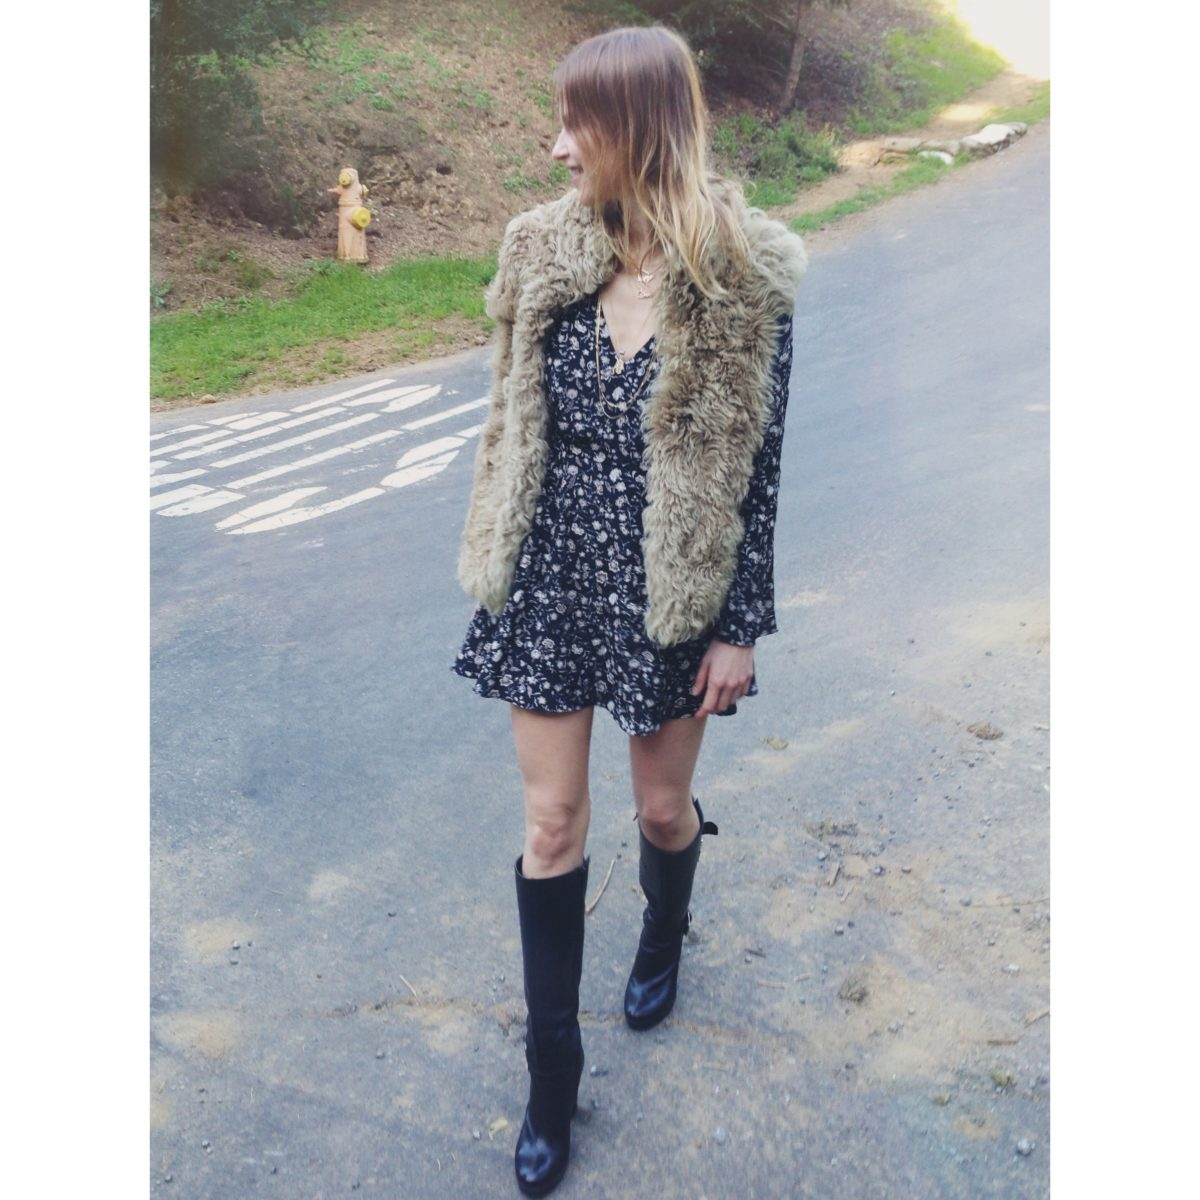 Floral Dress Knee High Boots feature